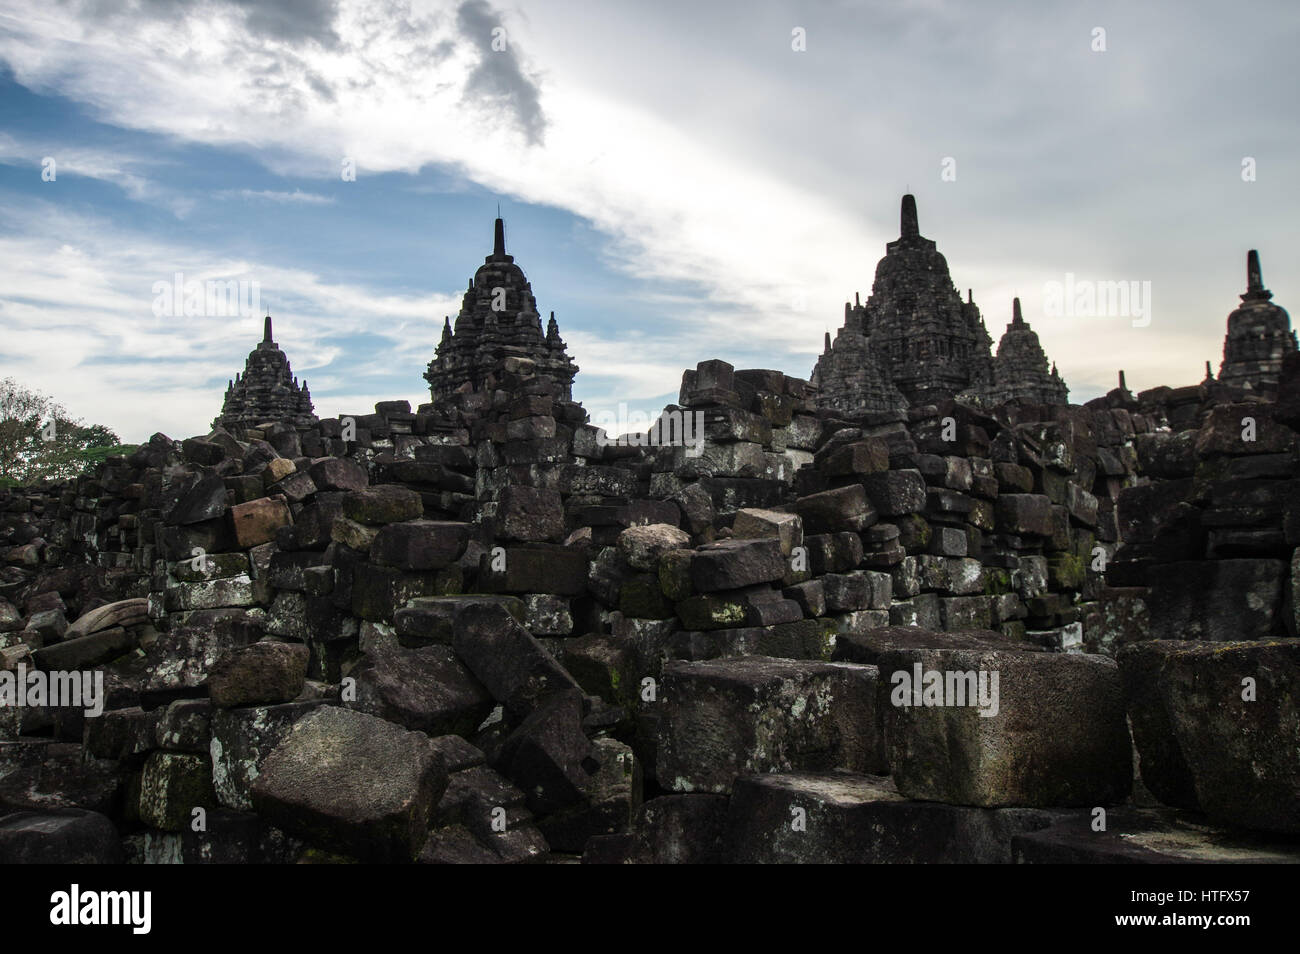 Sewu Mahayana Buddhist temple complex located near Prambanan in Central Java, Indonesia Stock Photo